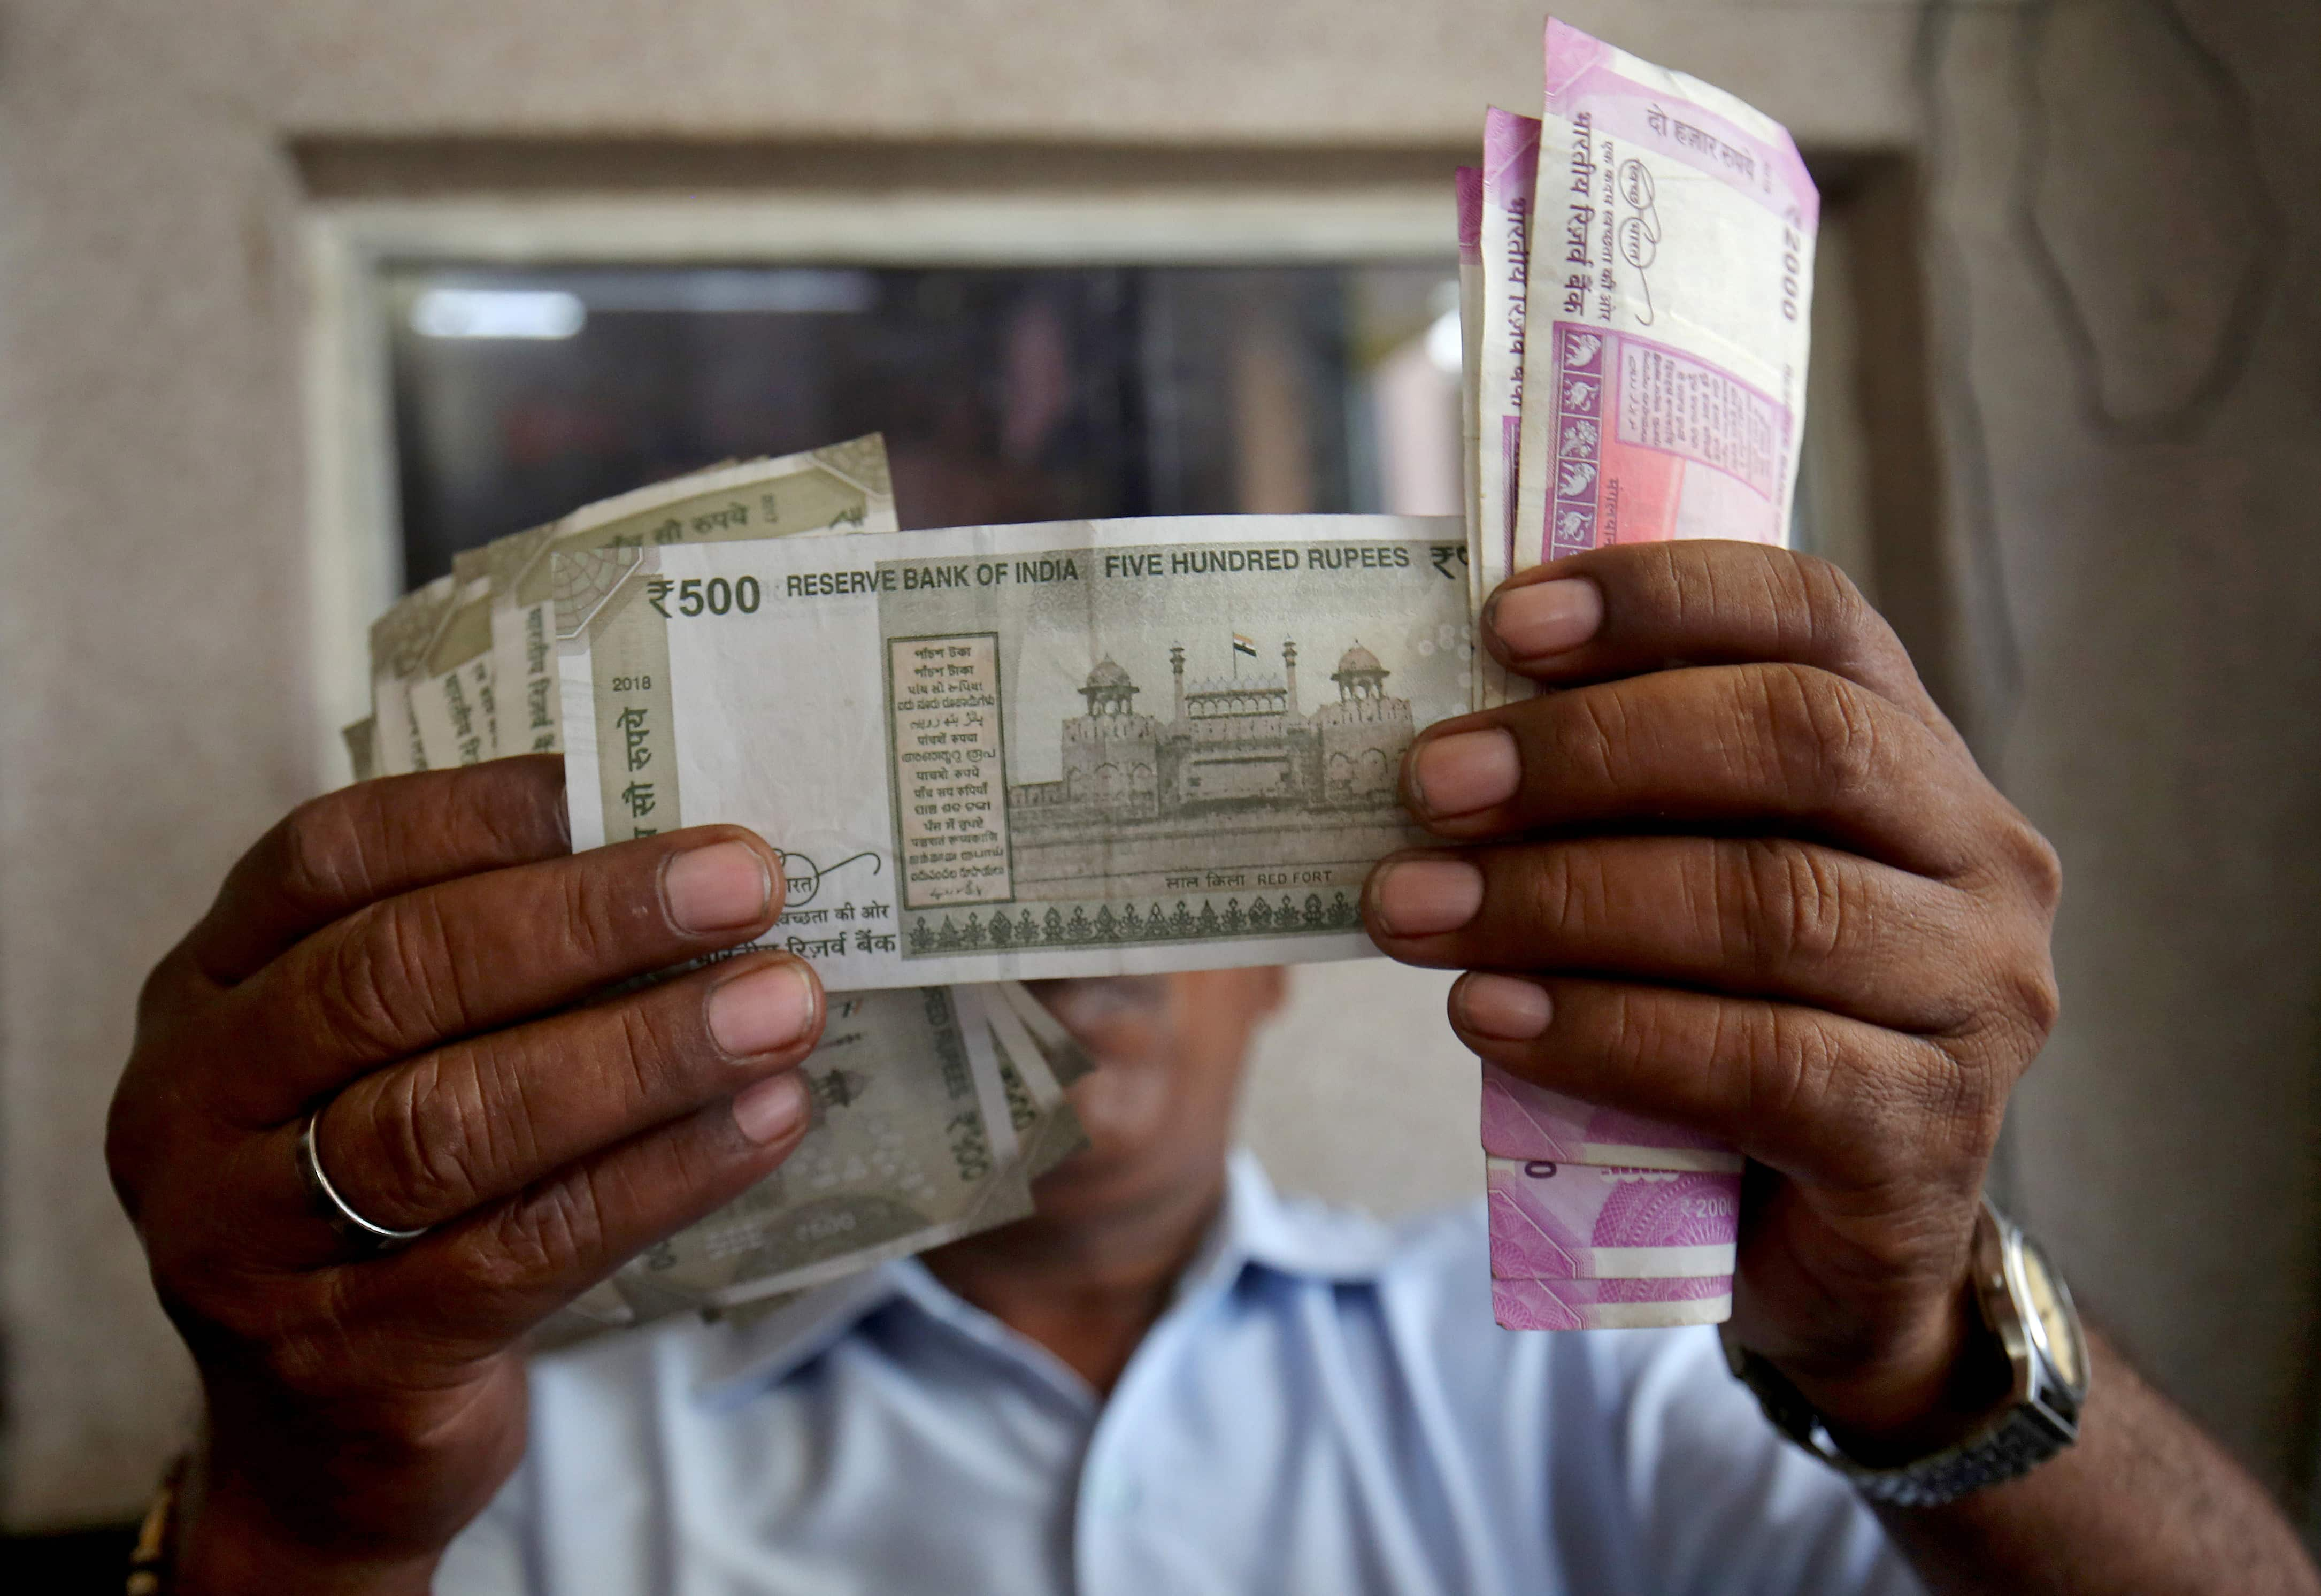 7th Pay Commission calculator: When it comes to this money